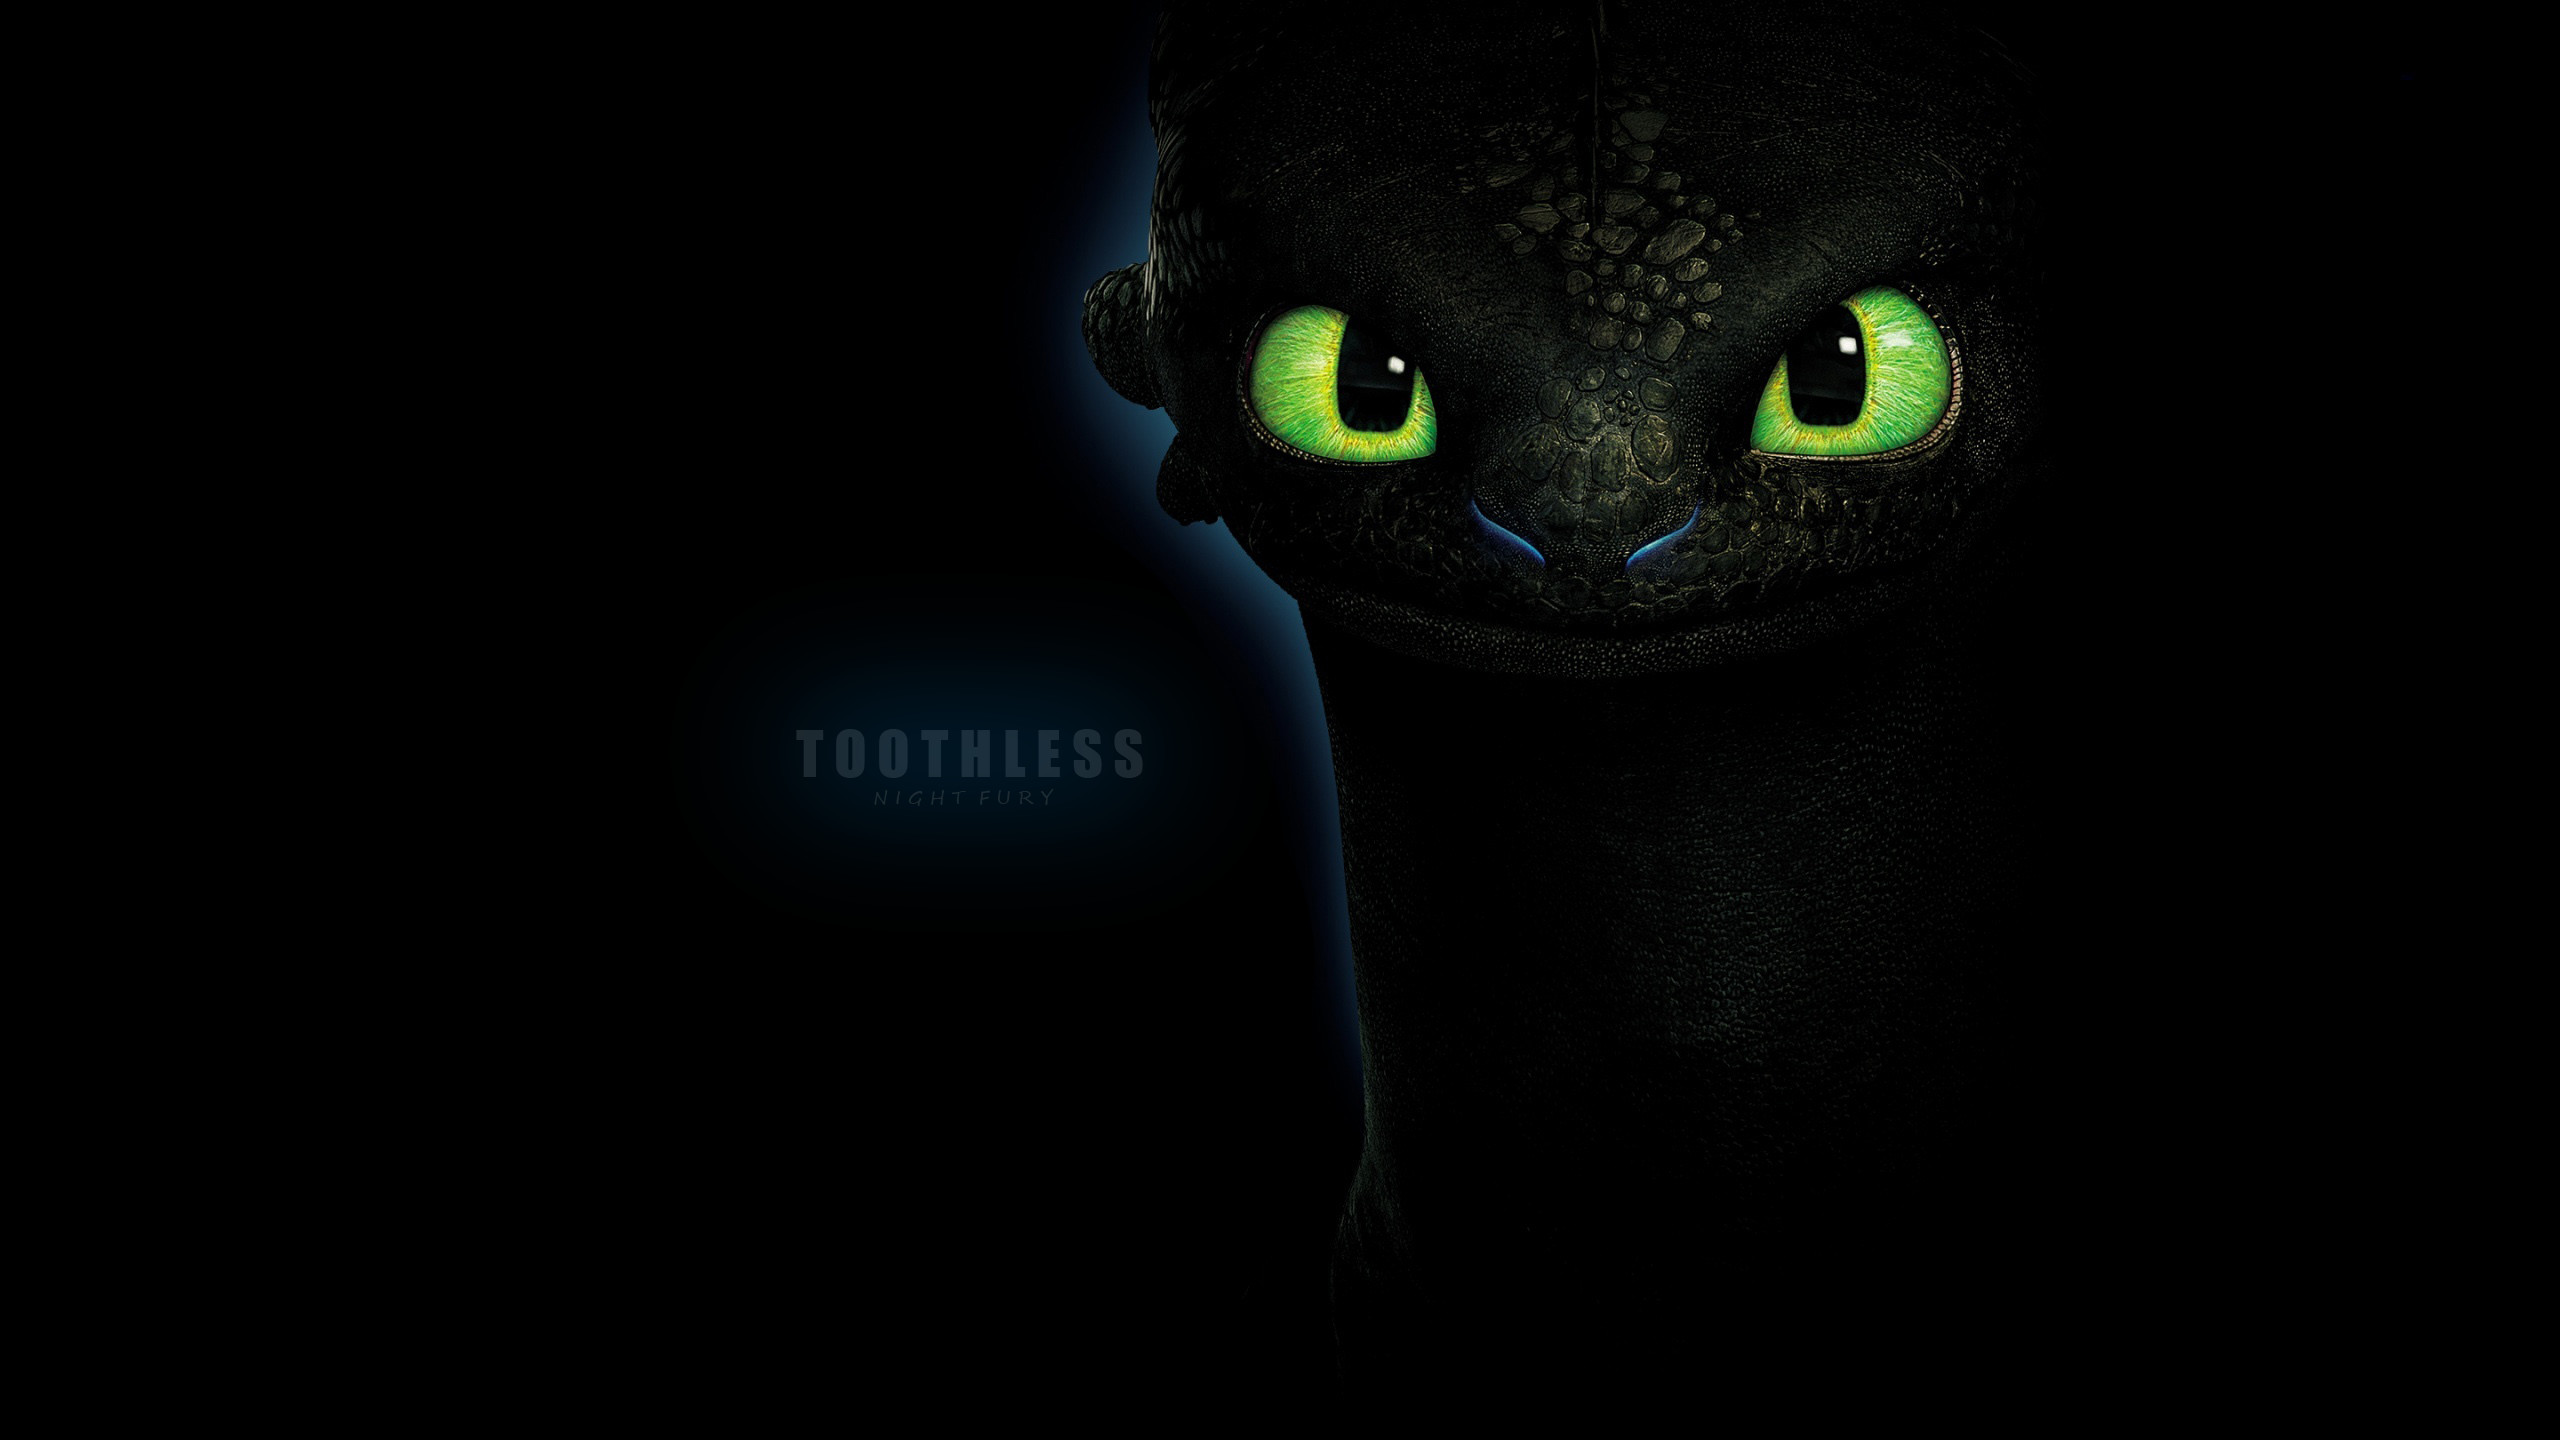 2560x1440 Toothless Wallpaper By Aspire443